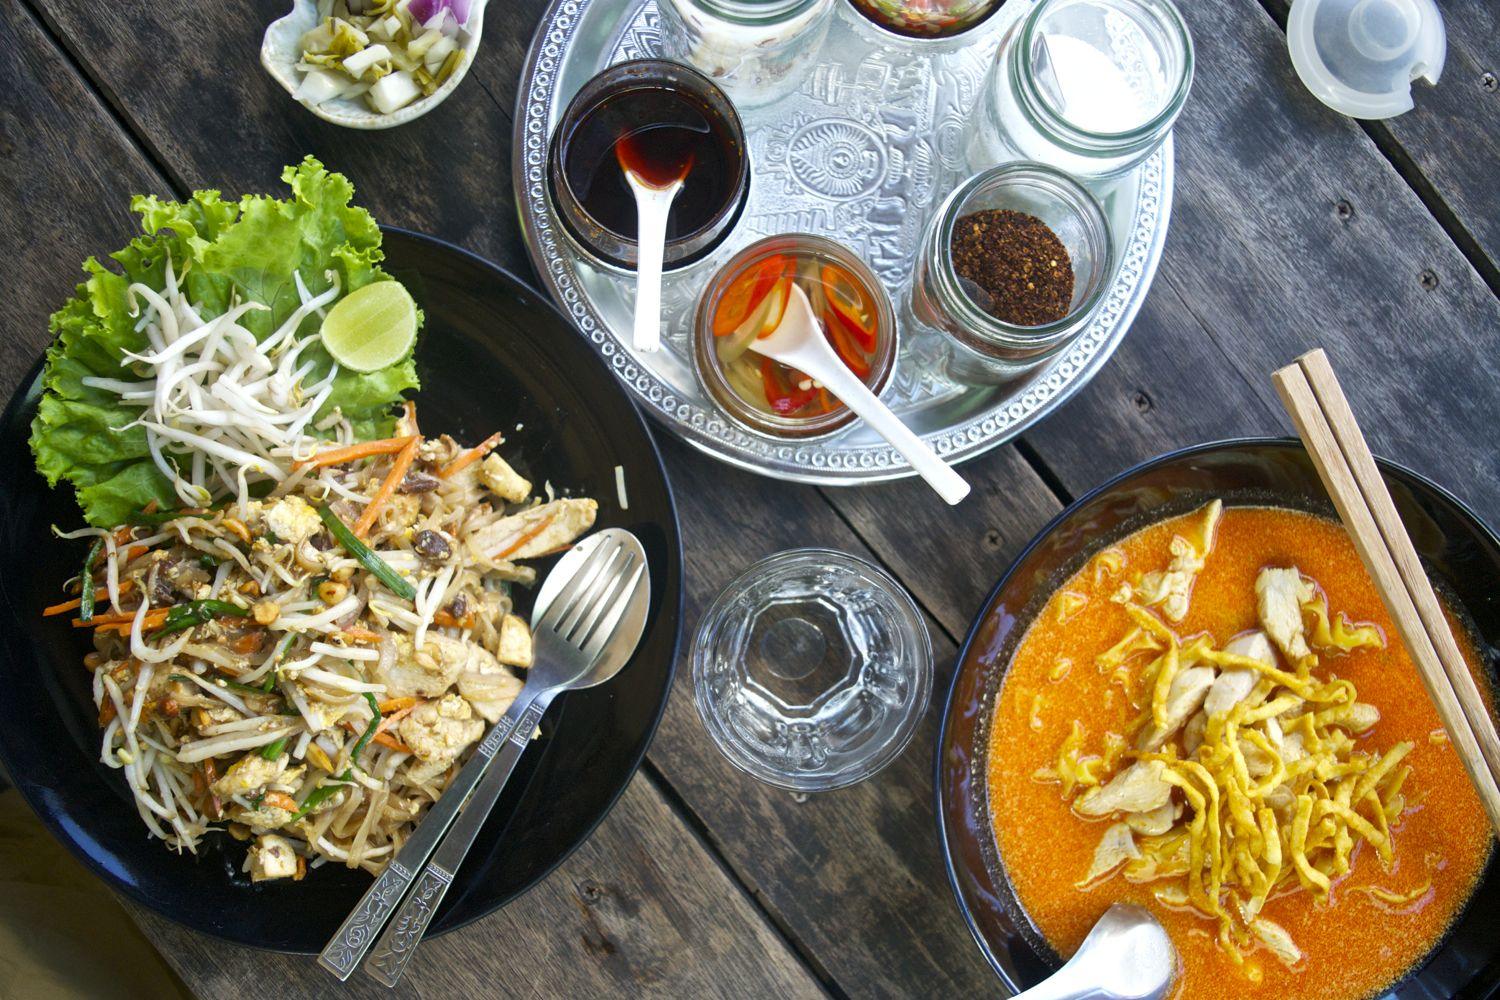 Pad Thai and Khao Soi from We's Restaurant in Chiang Mai- two concrete reasons to visit Thailand